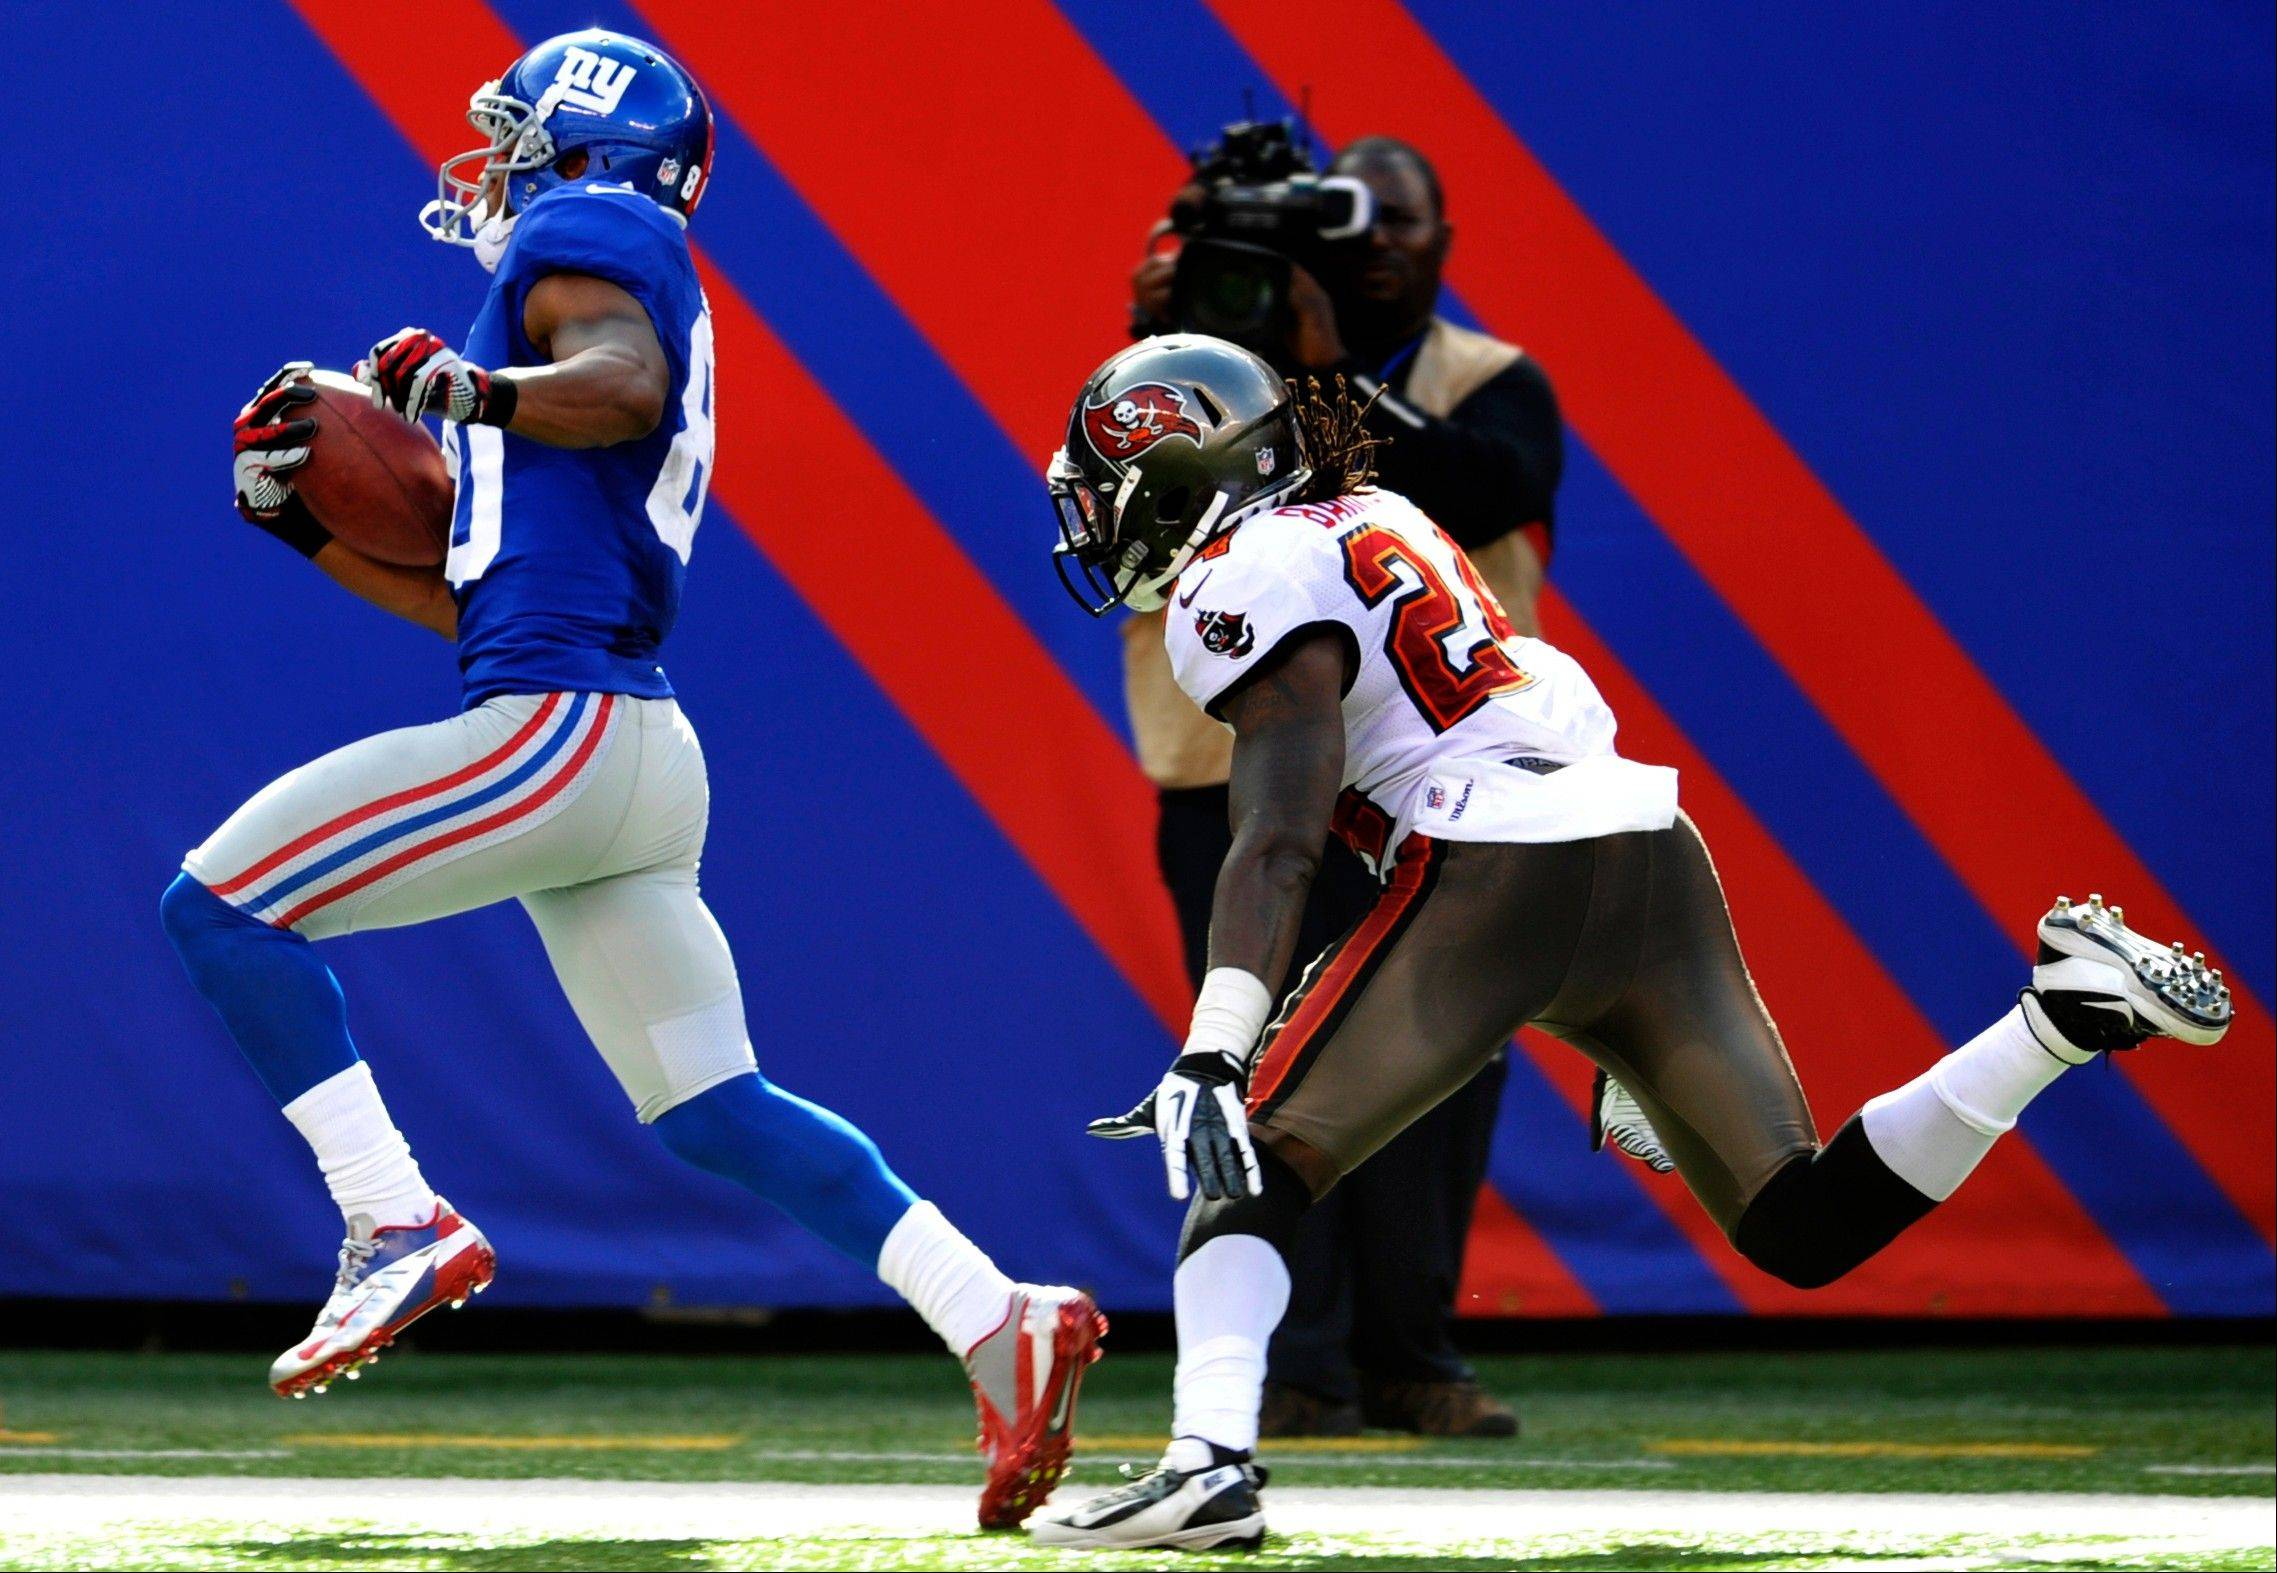 New York Giants� Hakeem Nicks (88) runs away from Tampa Bay Buccaneers� Mark Barron (24) for a touchdown during the second half in East Rutherford, N.J.